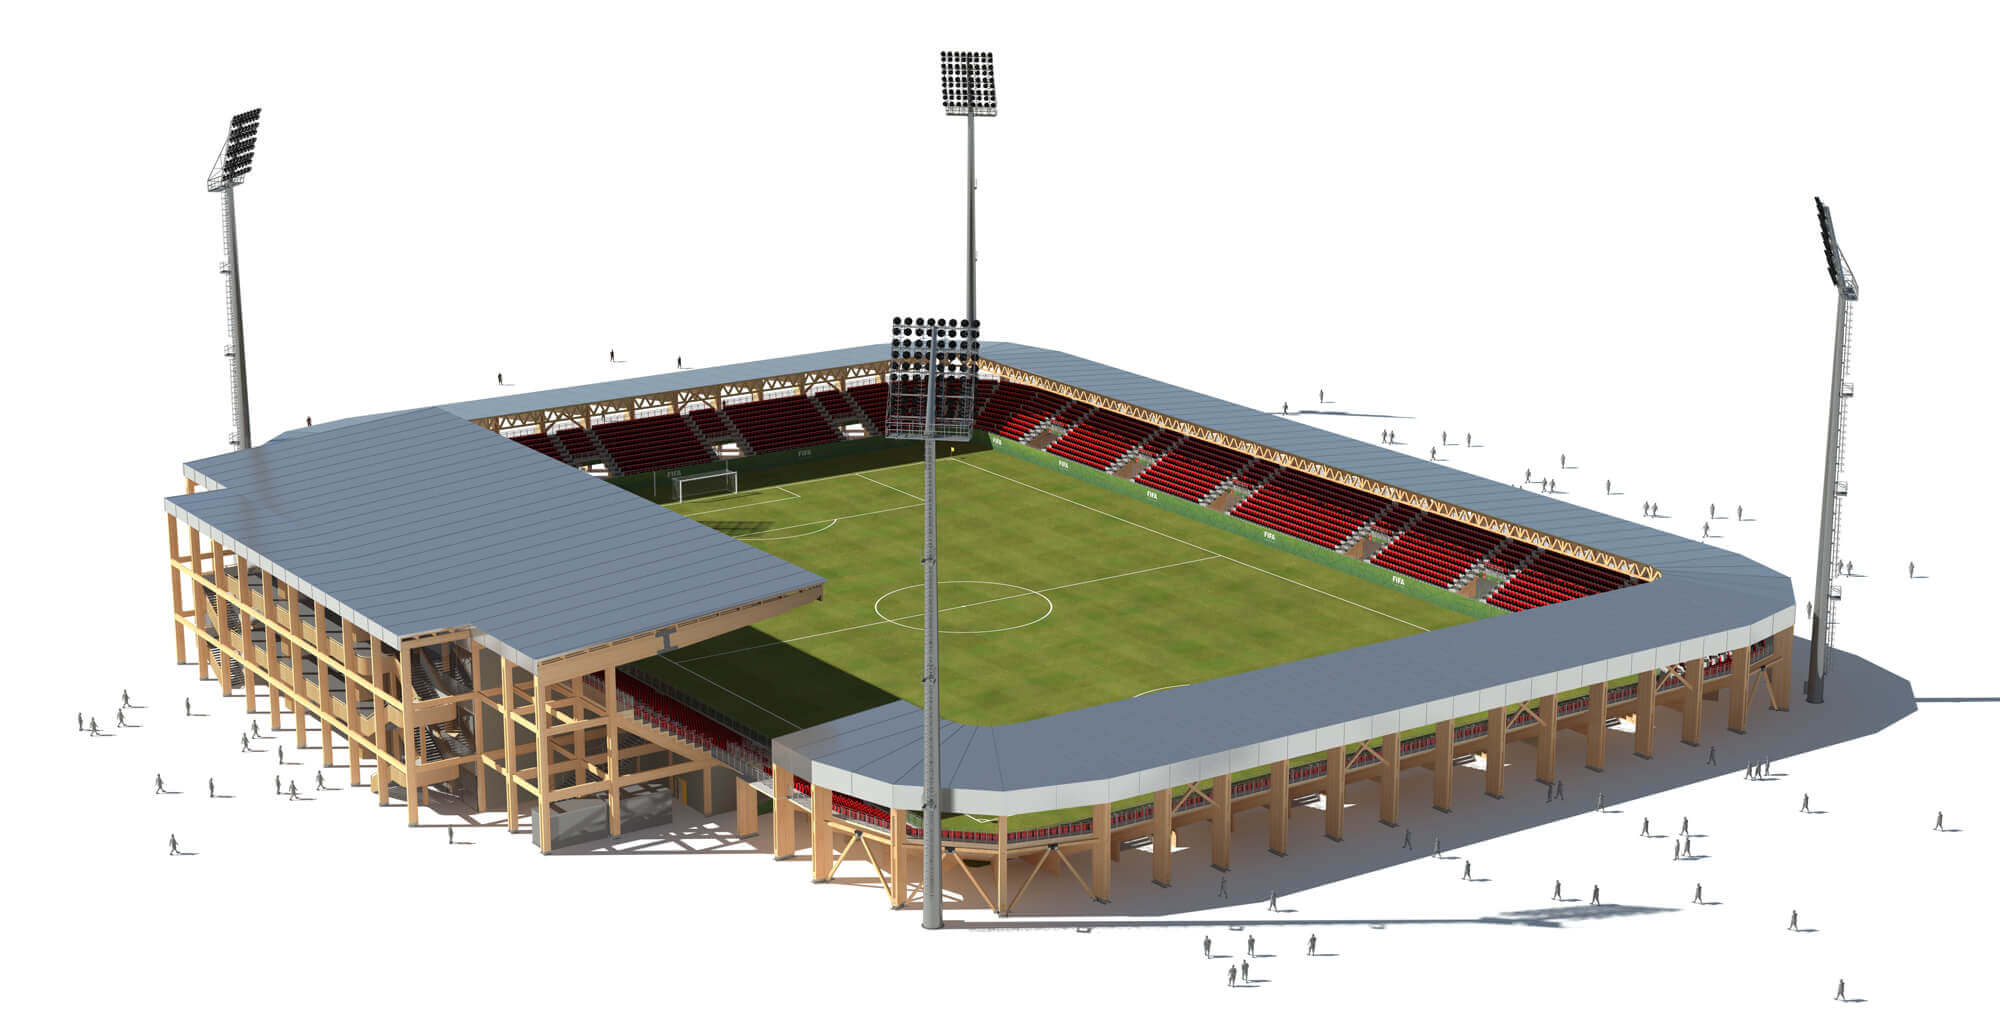 modular stadium construction rendering of a 10,000 seat structure